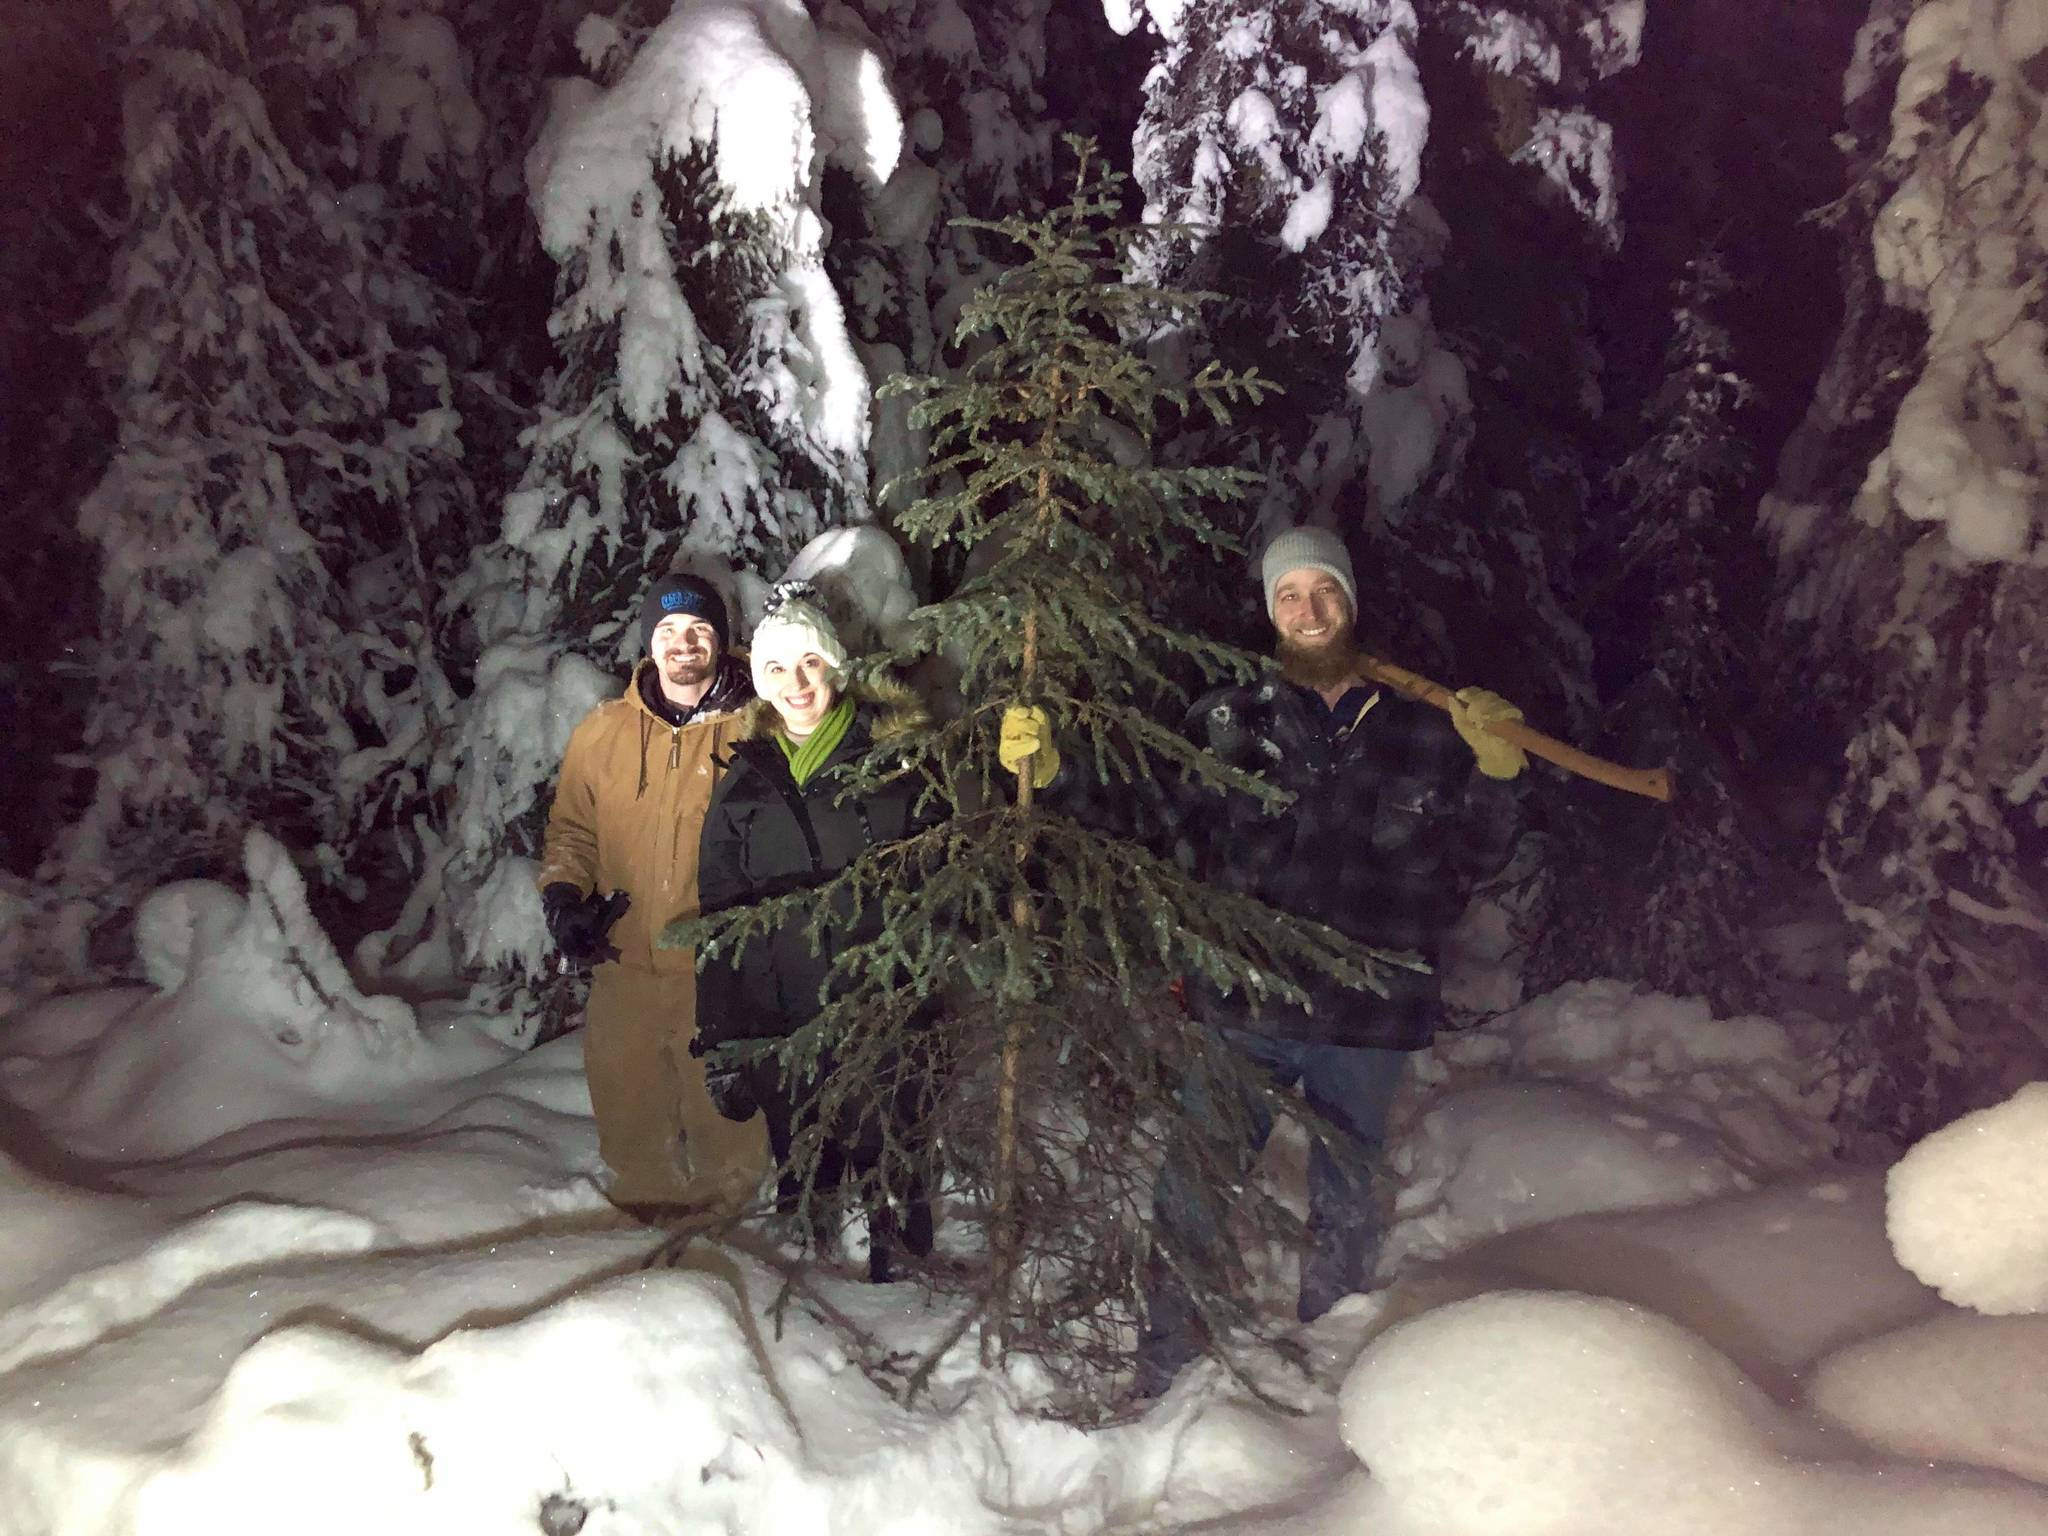 Ben Weagraff, Olivia Orth and Brian Mazurek stand next to a freshly cut black spruce off Funny River Road in Soldotna, Alaska on Dec. 8, 2019. (Photo by Victoria Peterson)